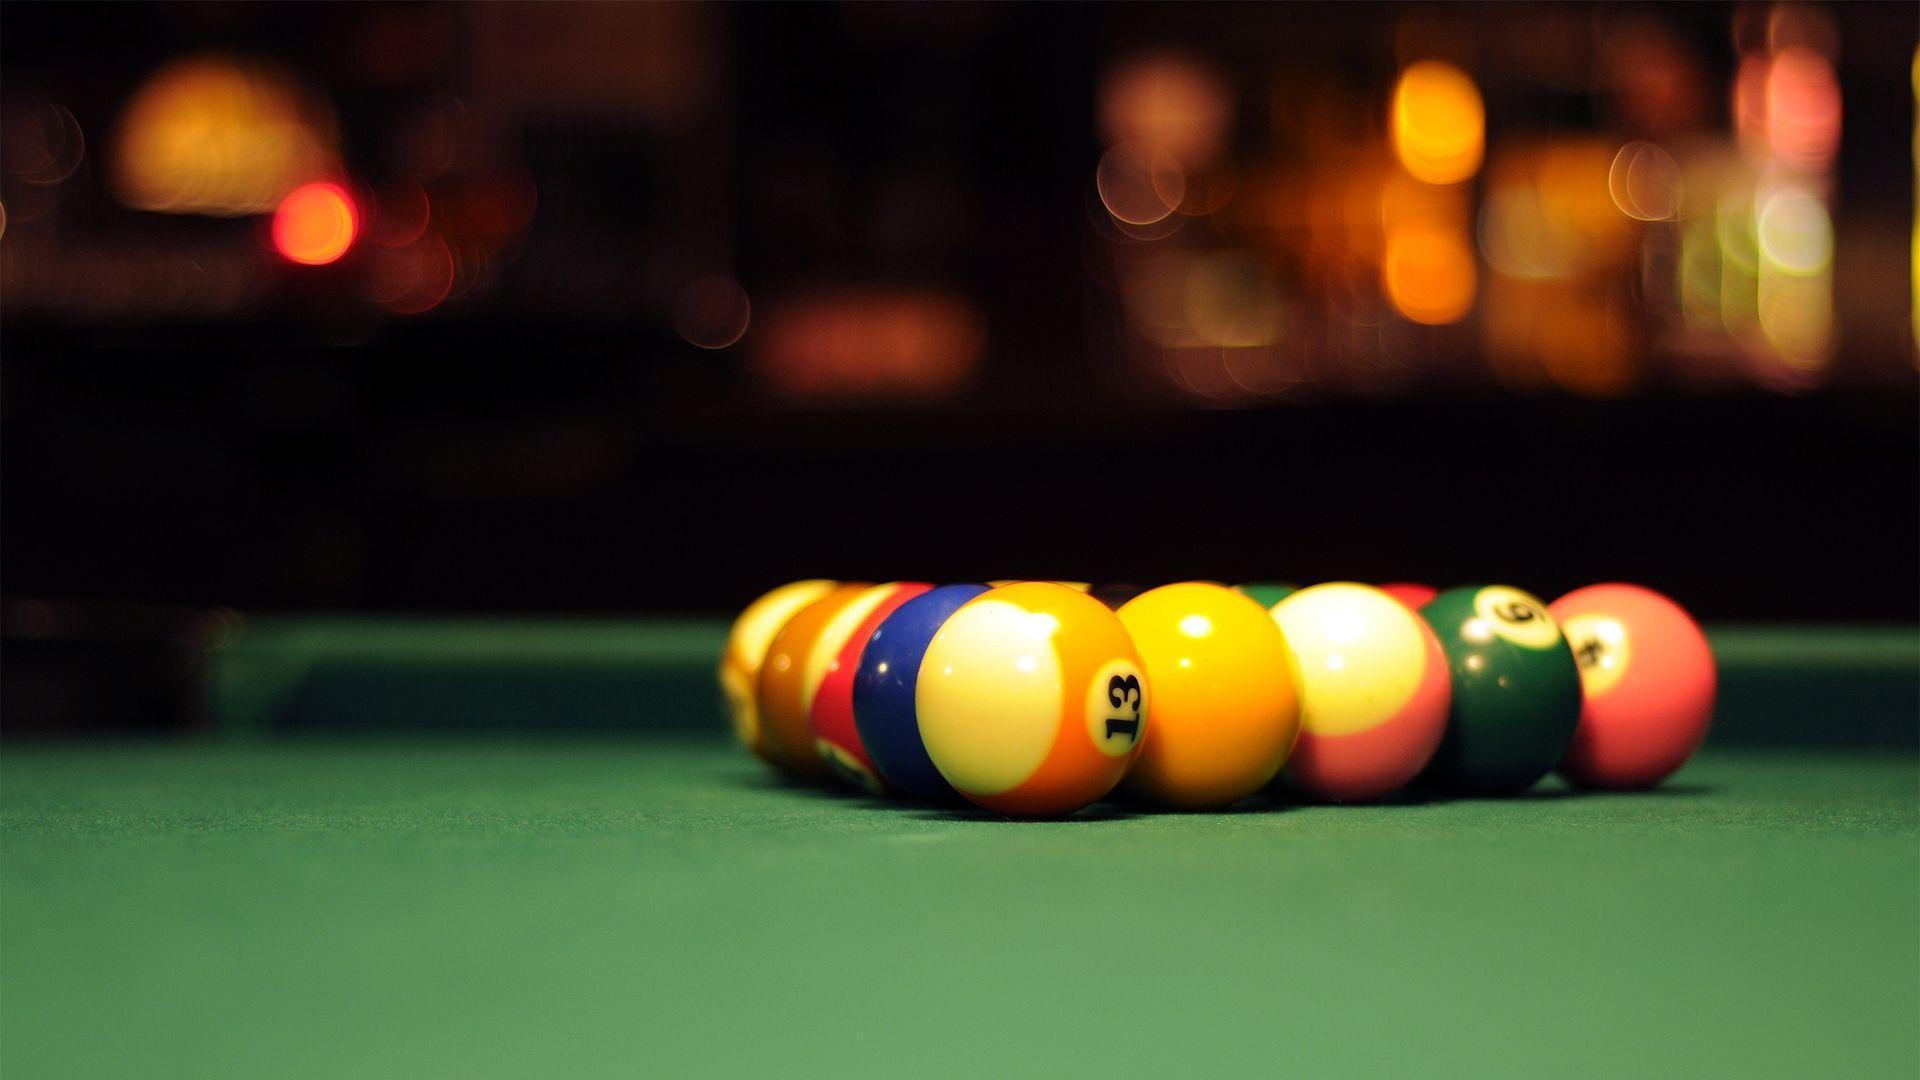 wallpapers in hd snooker - photo #33